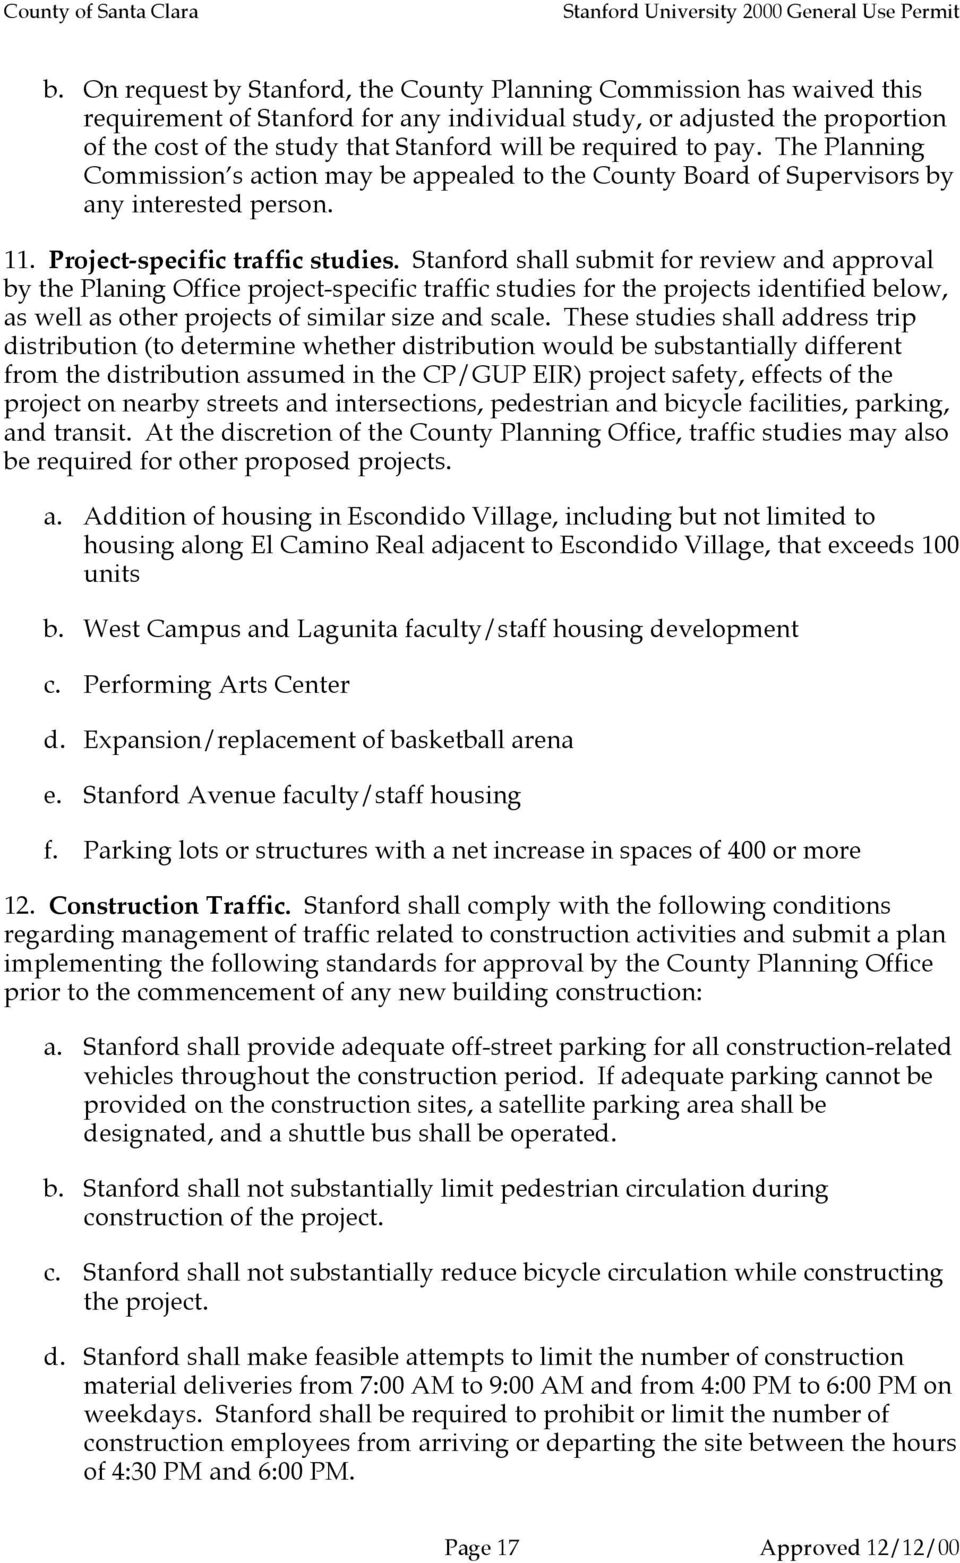 Stanford shall submit for review and approval by the Planing Office project-specific traffic studies for the projects identified below, as well as other projects of similar size and scale.